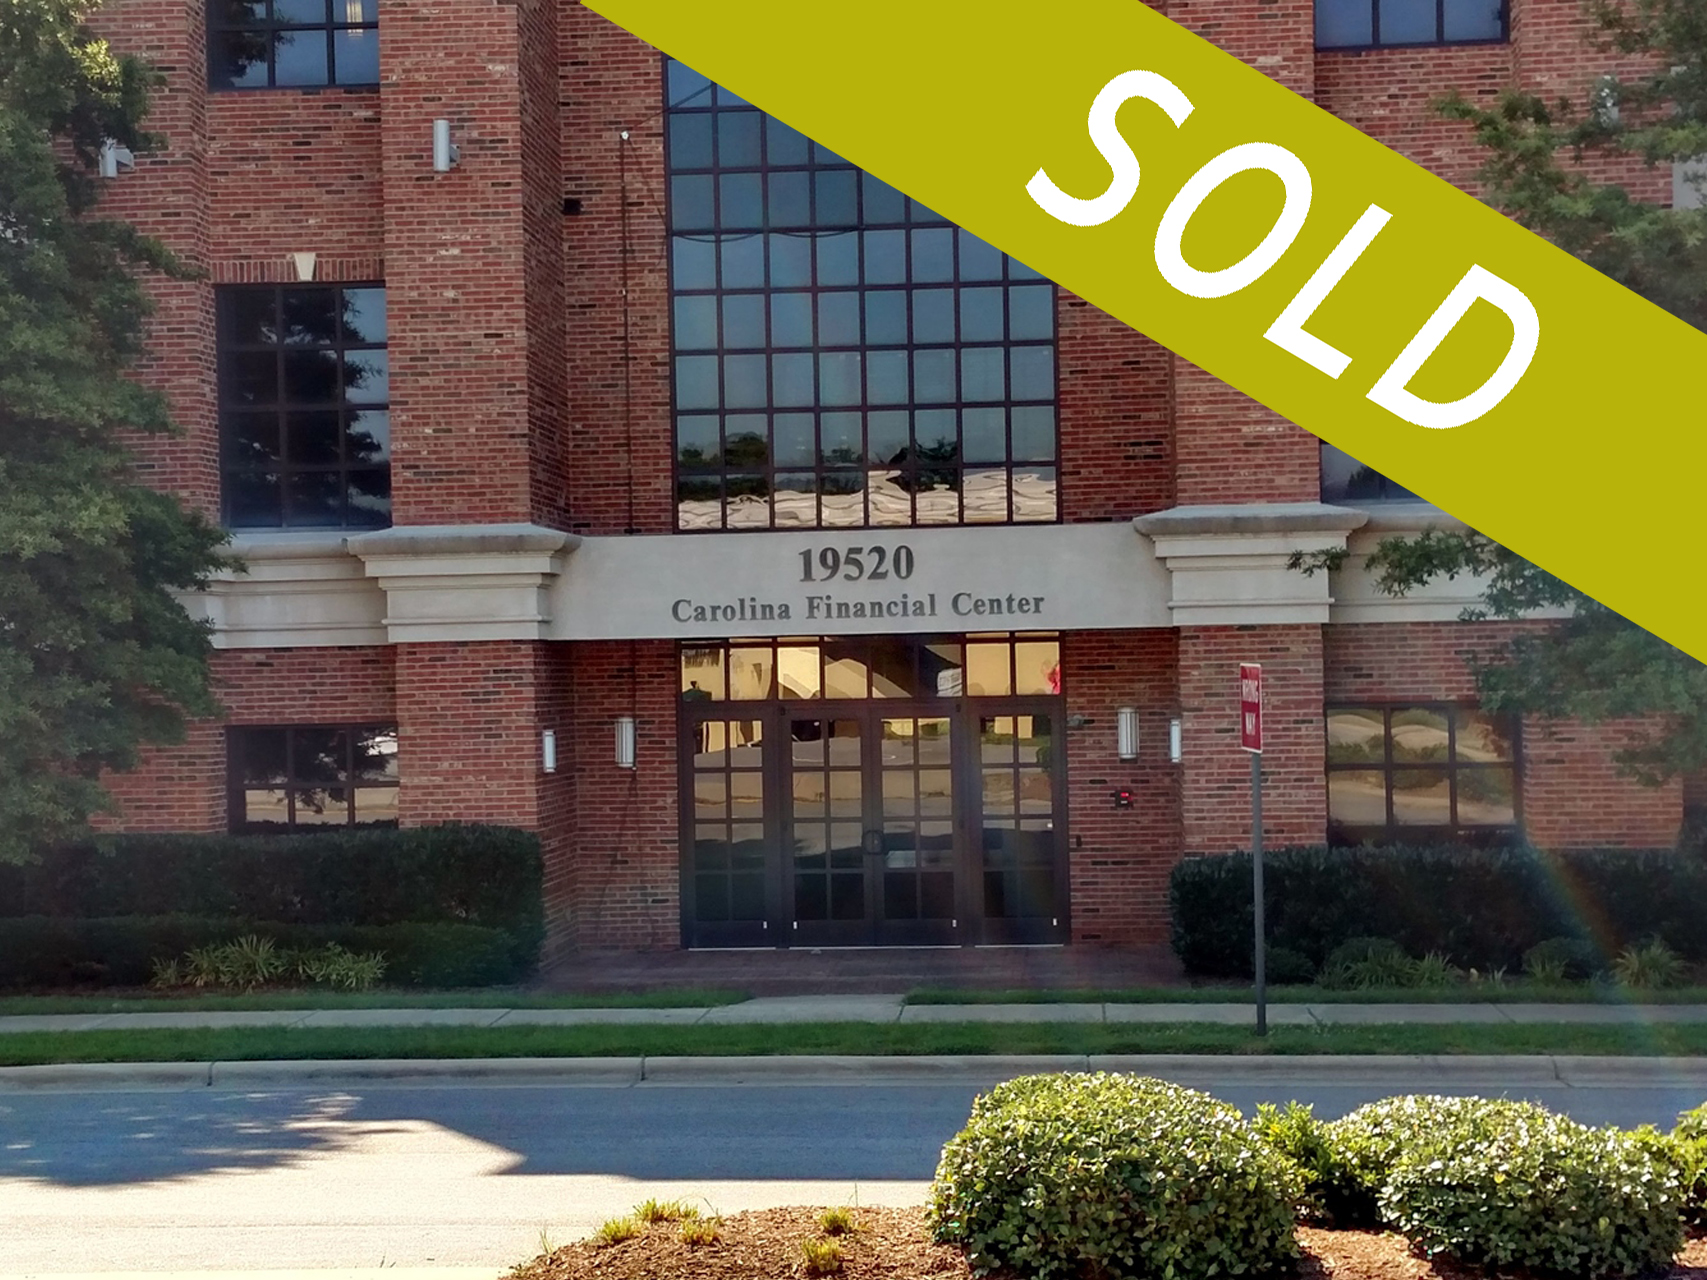 Carolina Financial Center Offices For Sale Cornelius, NC Office Listings Lake Norman